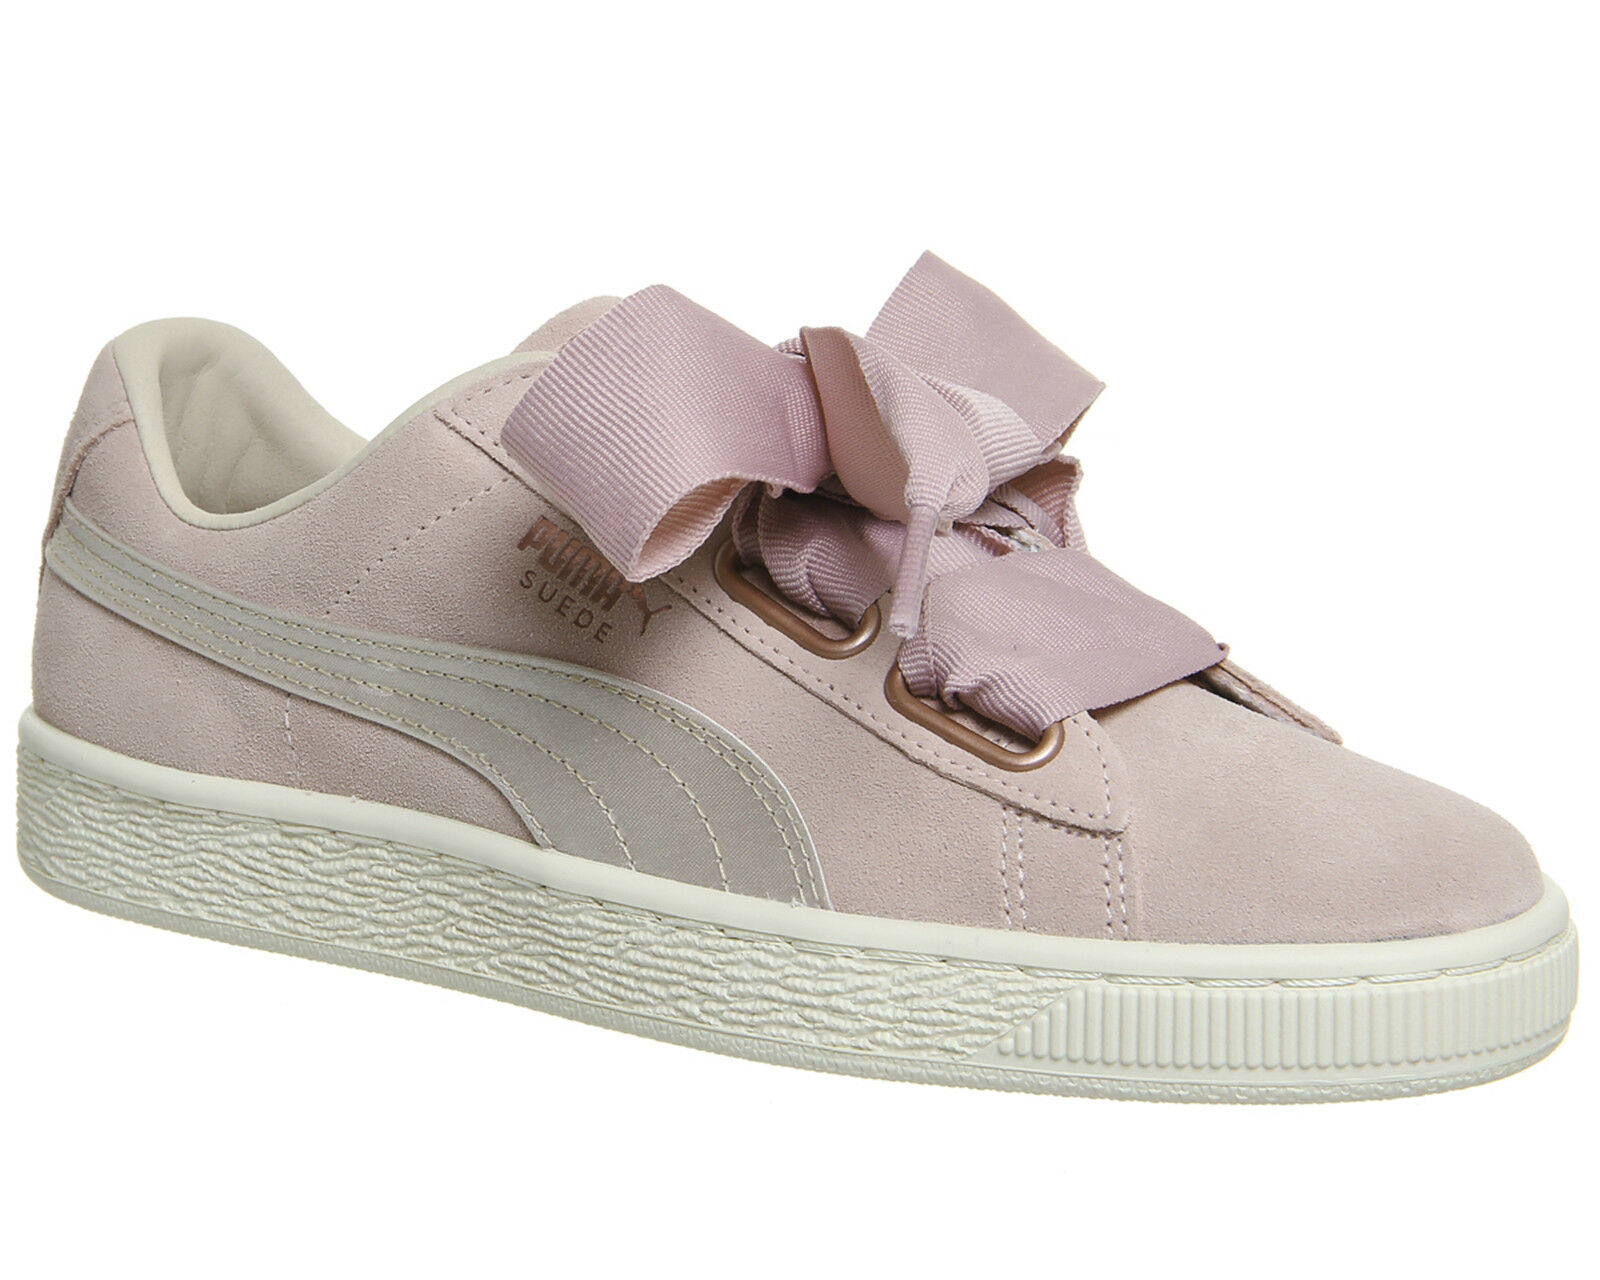 Chaussures Femme Puma Daim Coeur Baskets Argent Rose TEINTE OR ROSE Baskets Chaussures